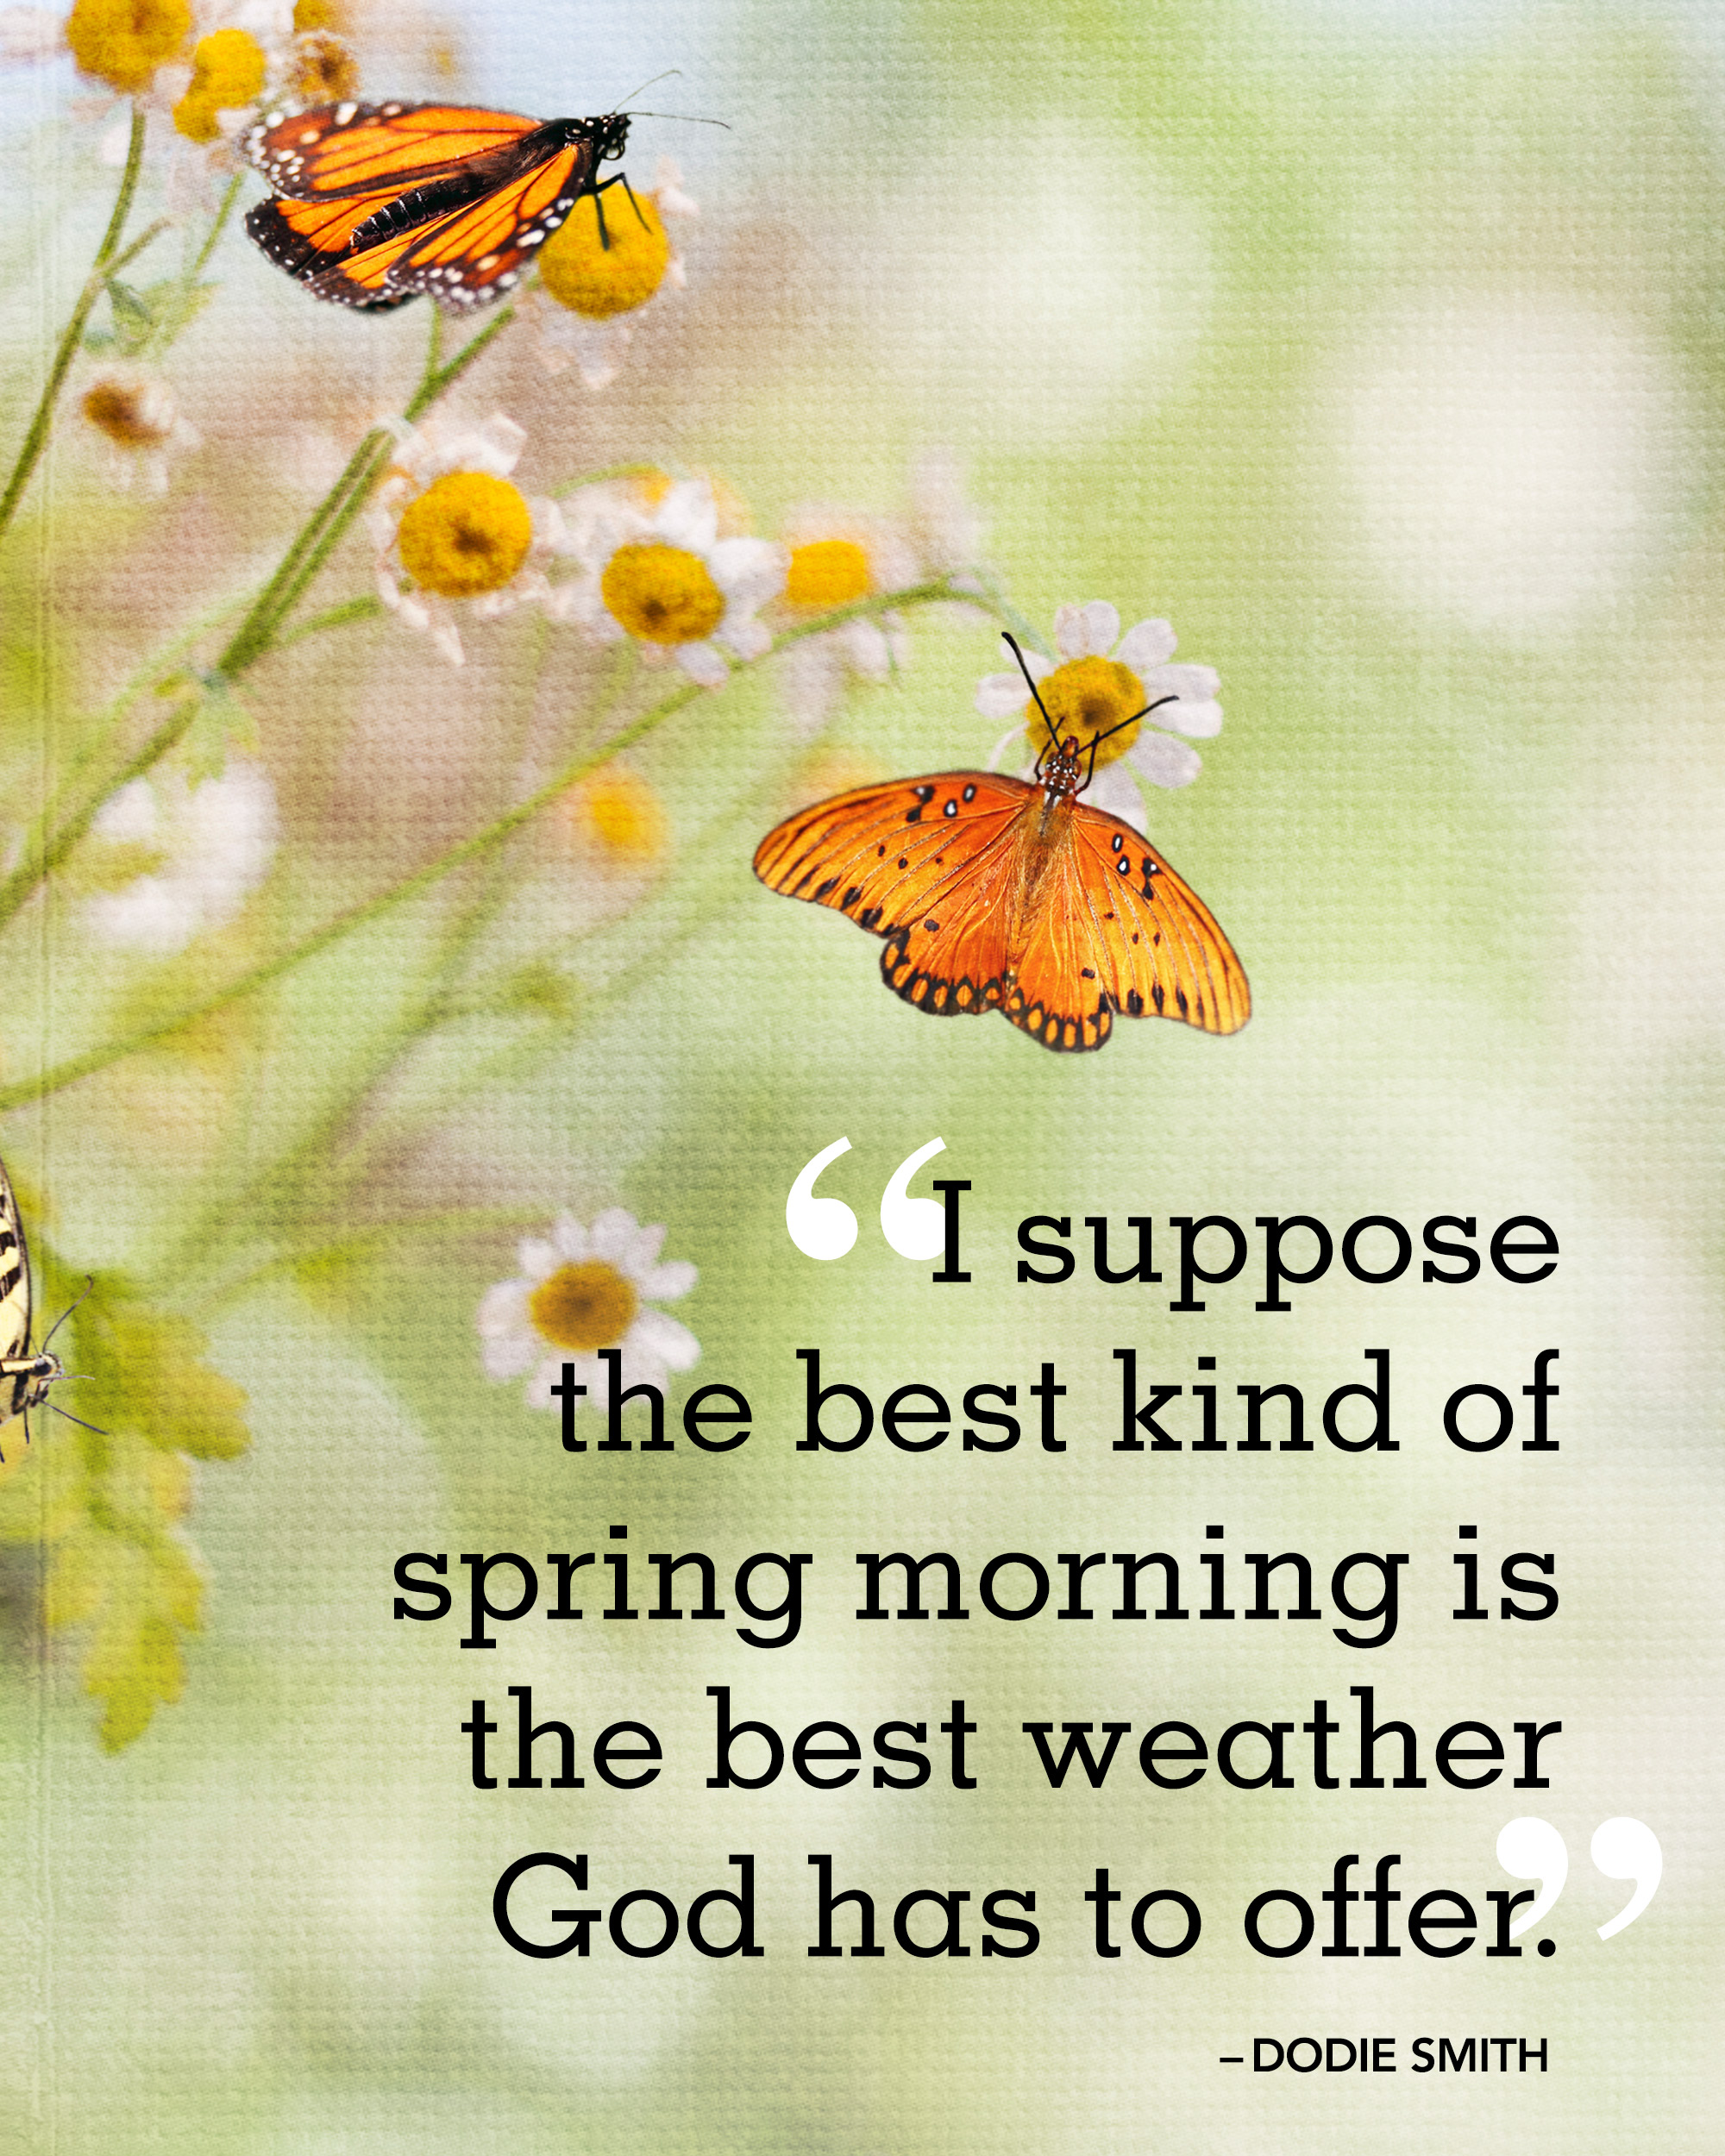 Favorite Quotes About Life 26 Spring Quotes  Life Quotes & Humor